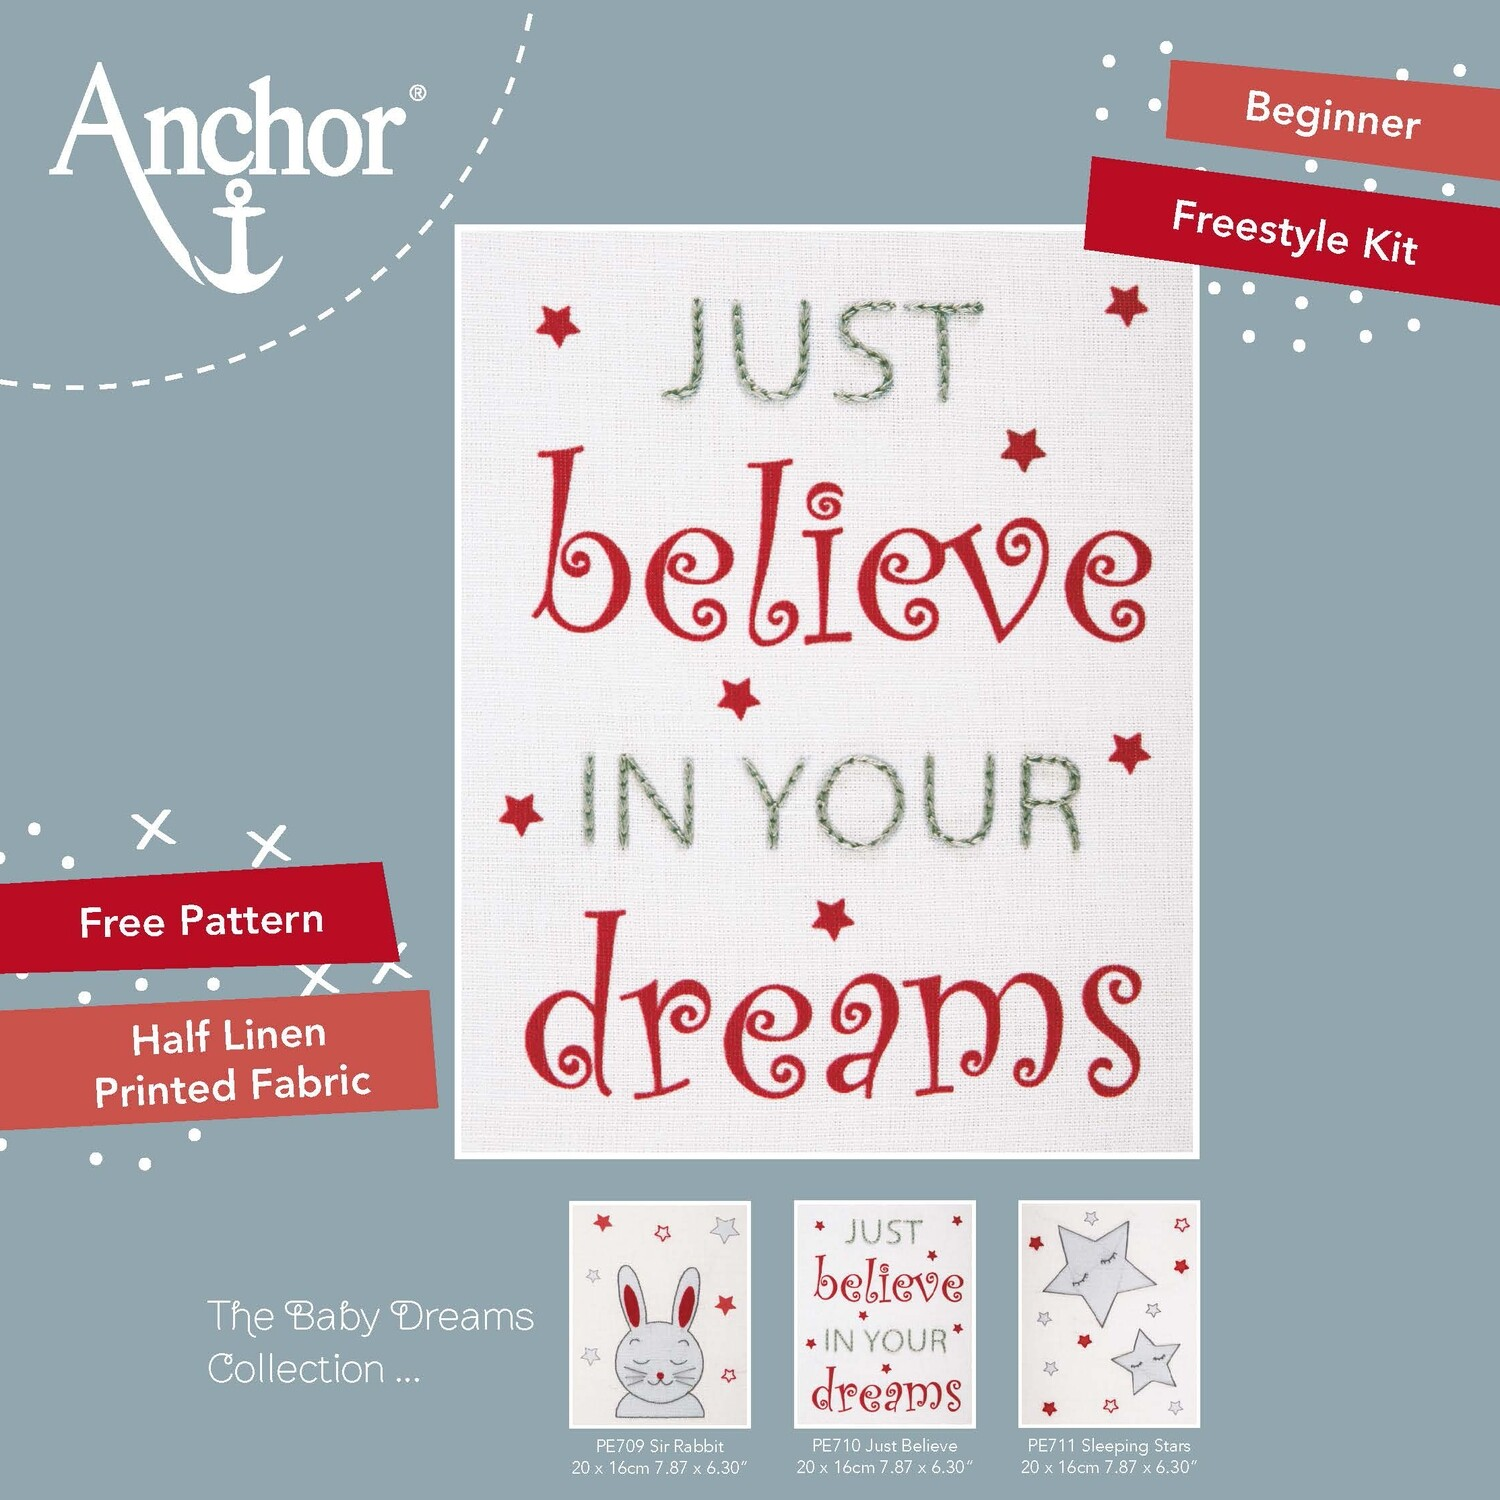 Anchor Starter Freestyle Kit - Just Believe 20x16cm